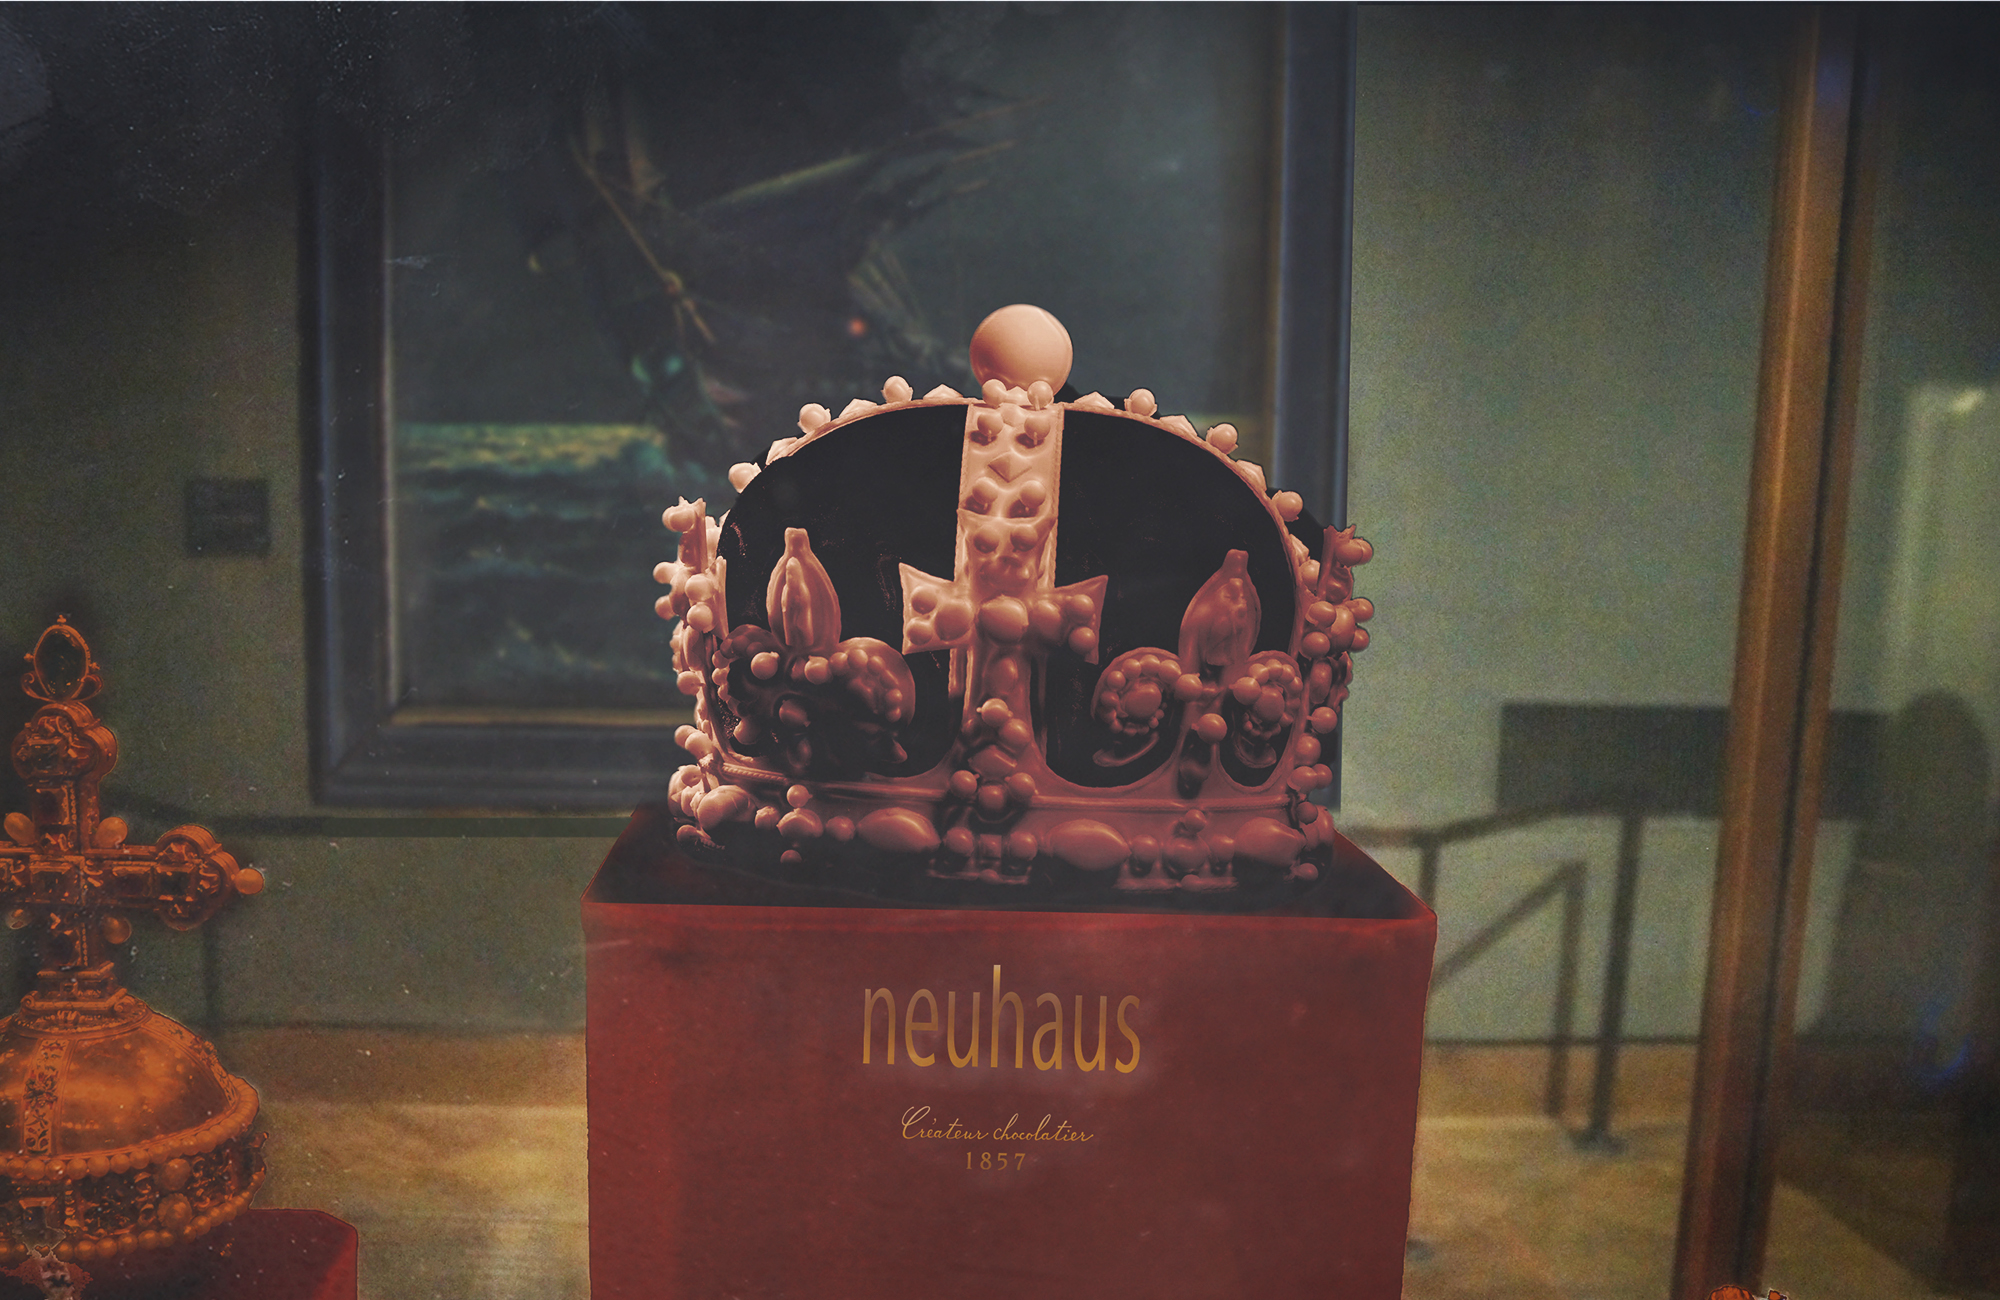 "<span style=""color: #777777"">👑 Neuhaus <B>Chocolate Crown Jewels</B> </span>- POS - 2016 YoungDogs"